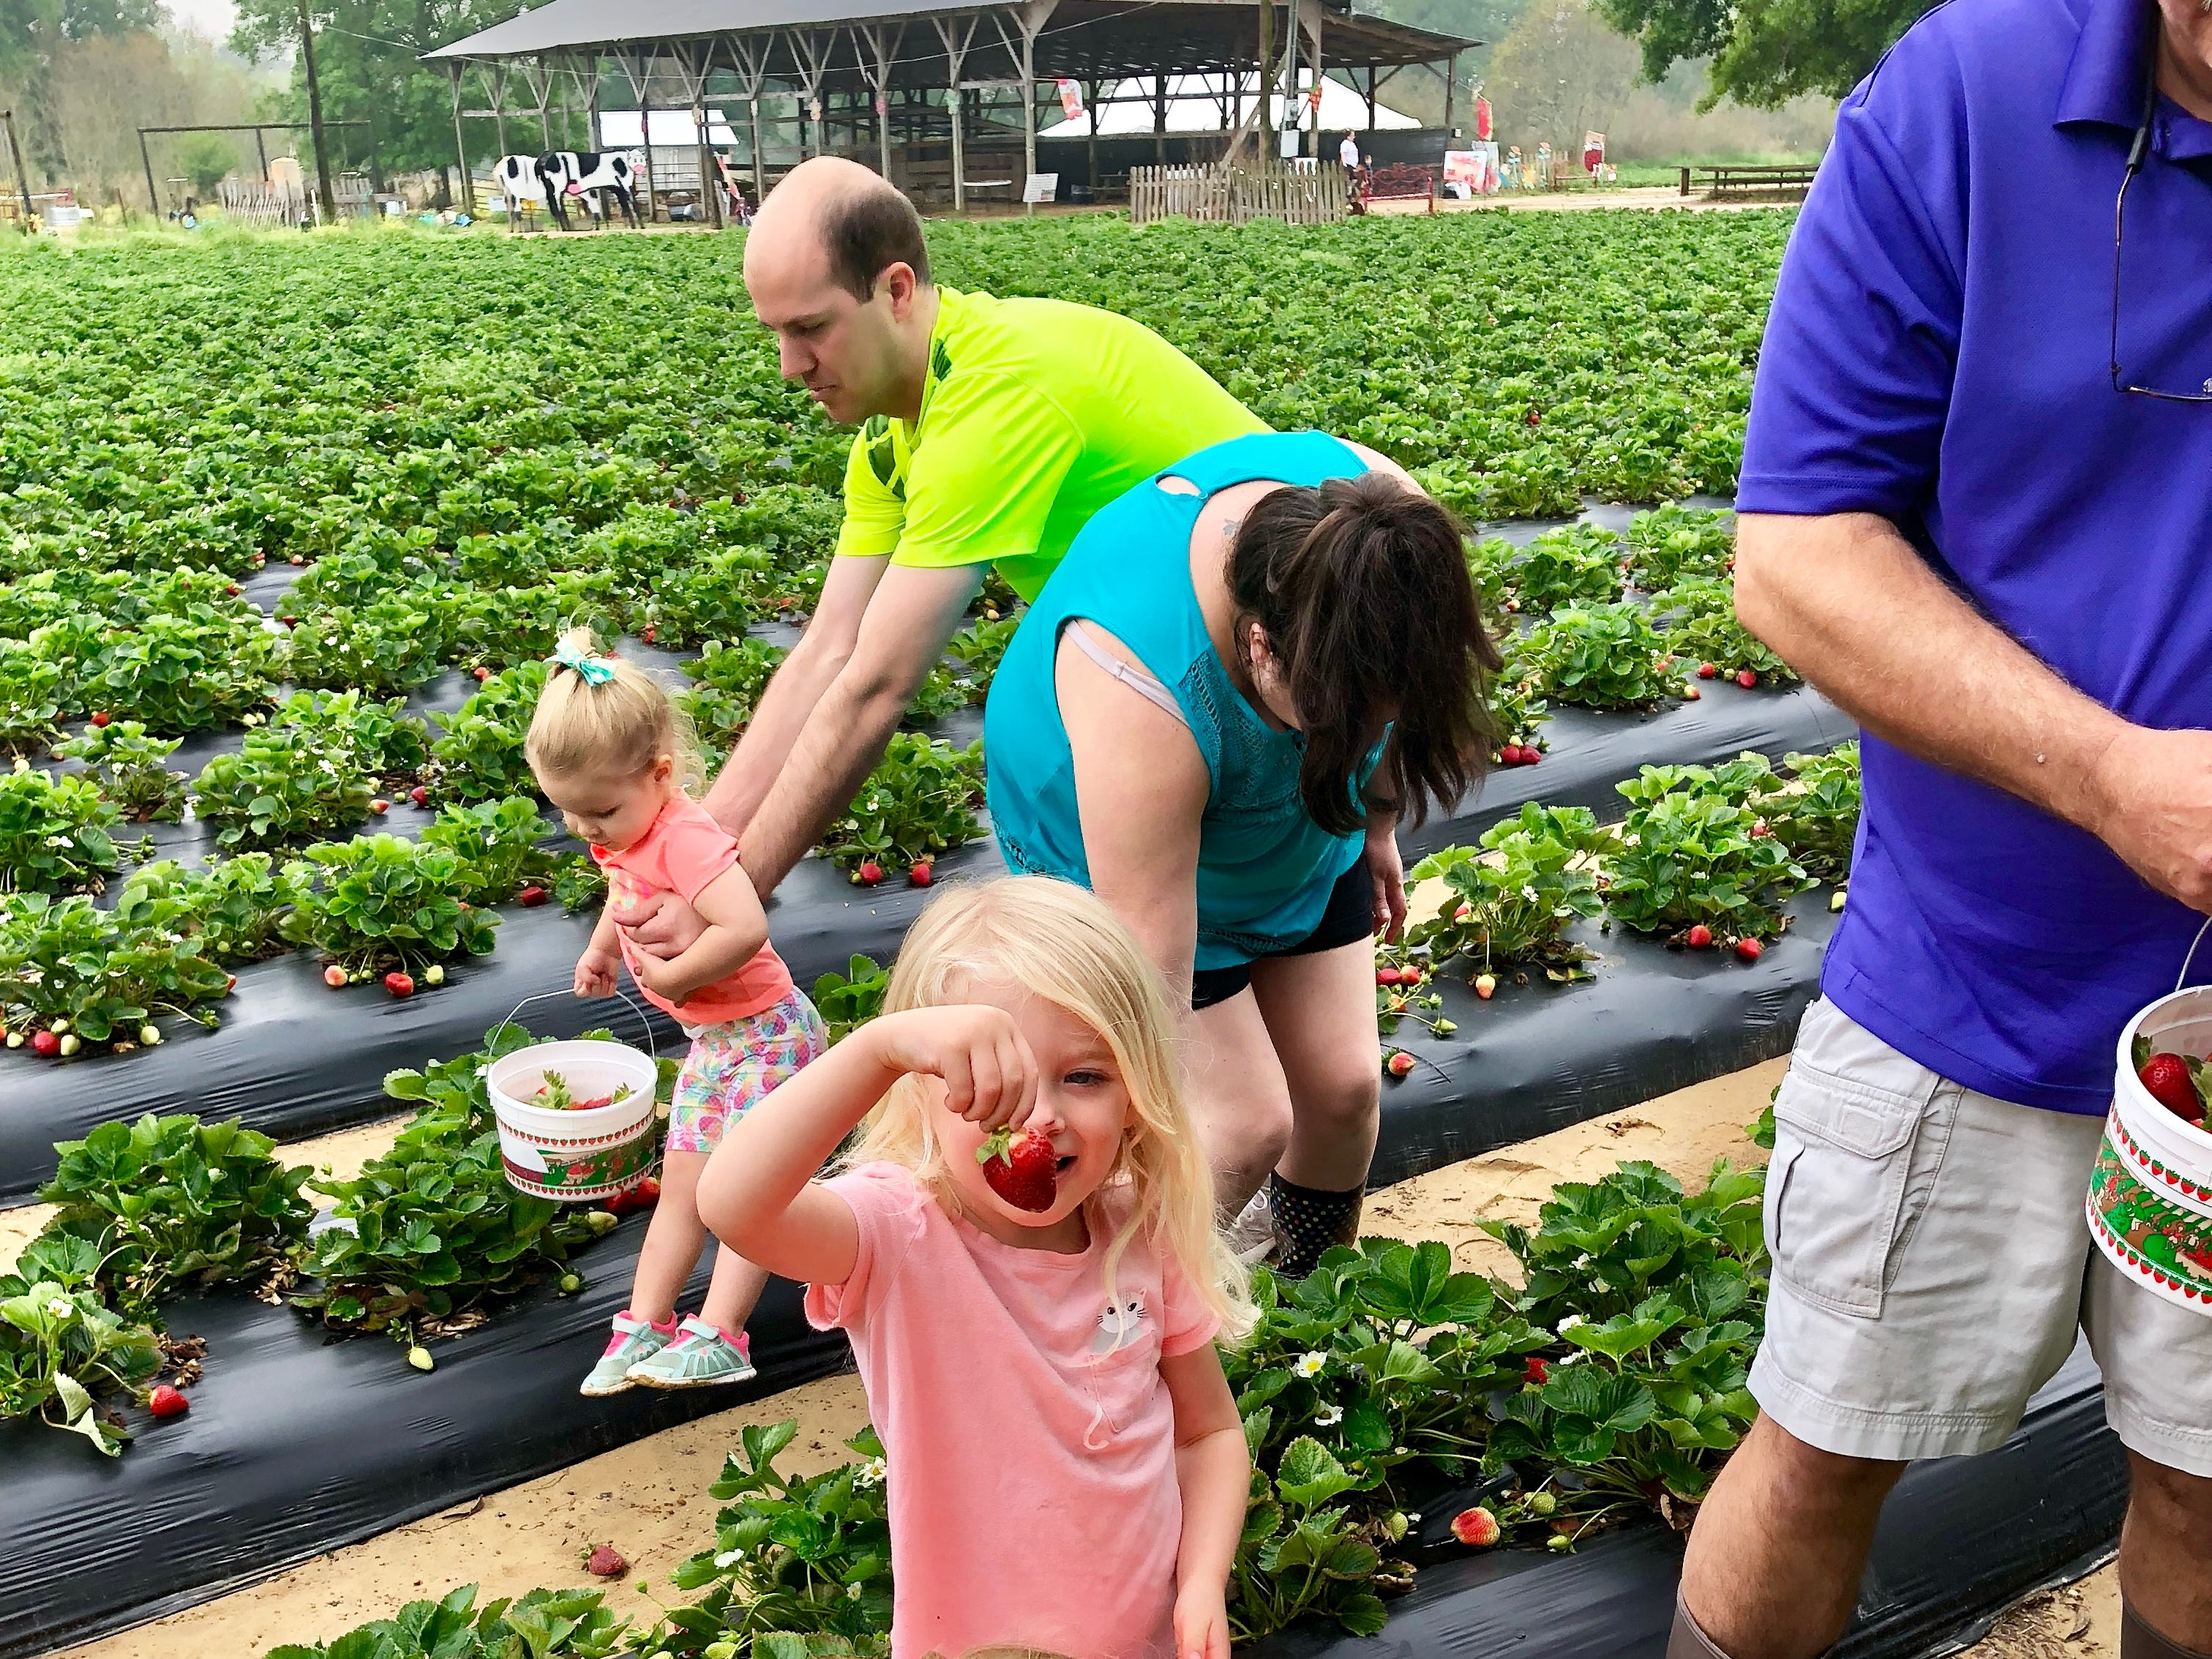 Claire Ivy, 3, picks strawberries with her cousins April 6 at Mrs. Heather's Strawberry Farm in Albany, Louisiana.